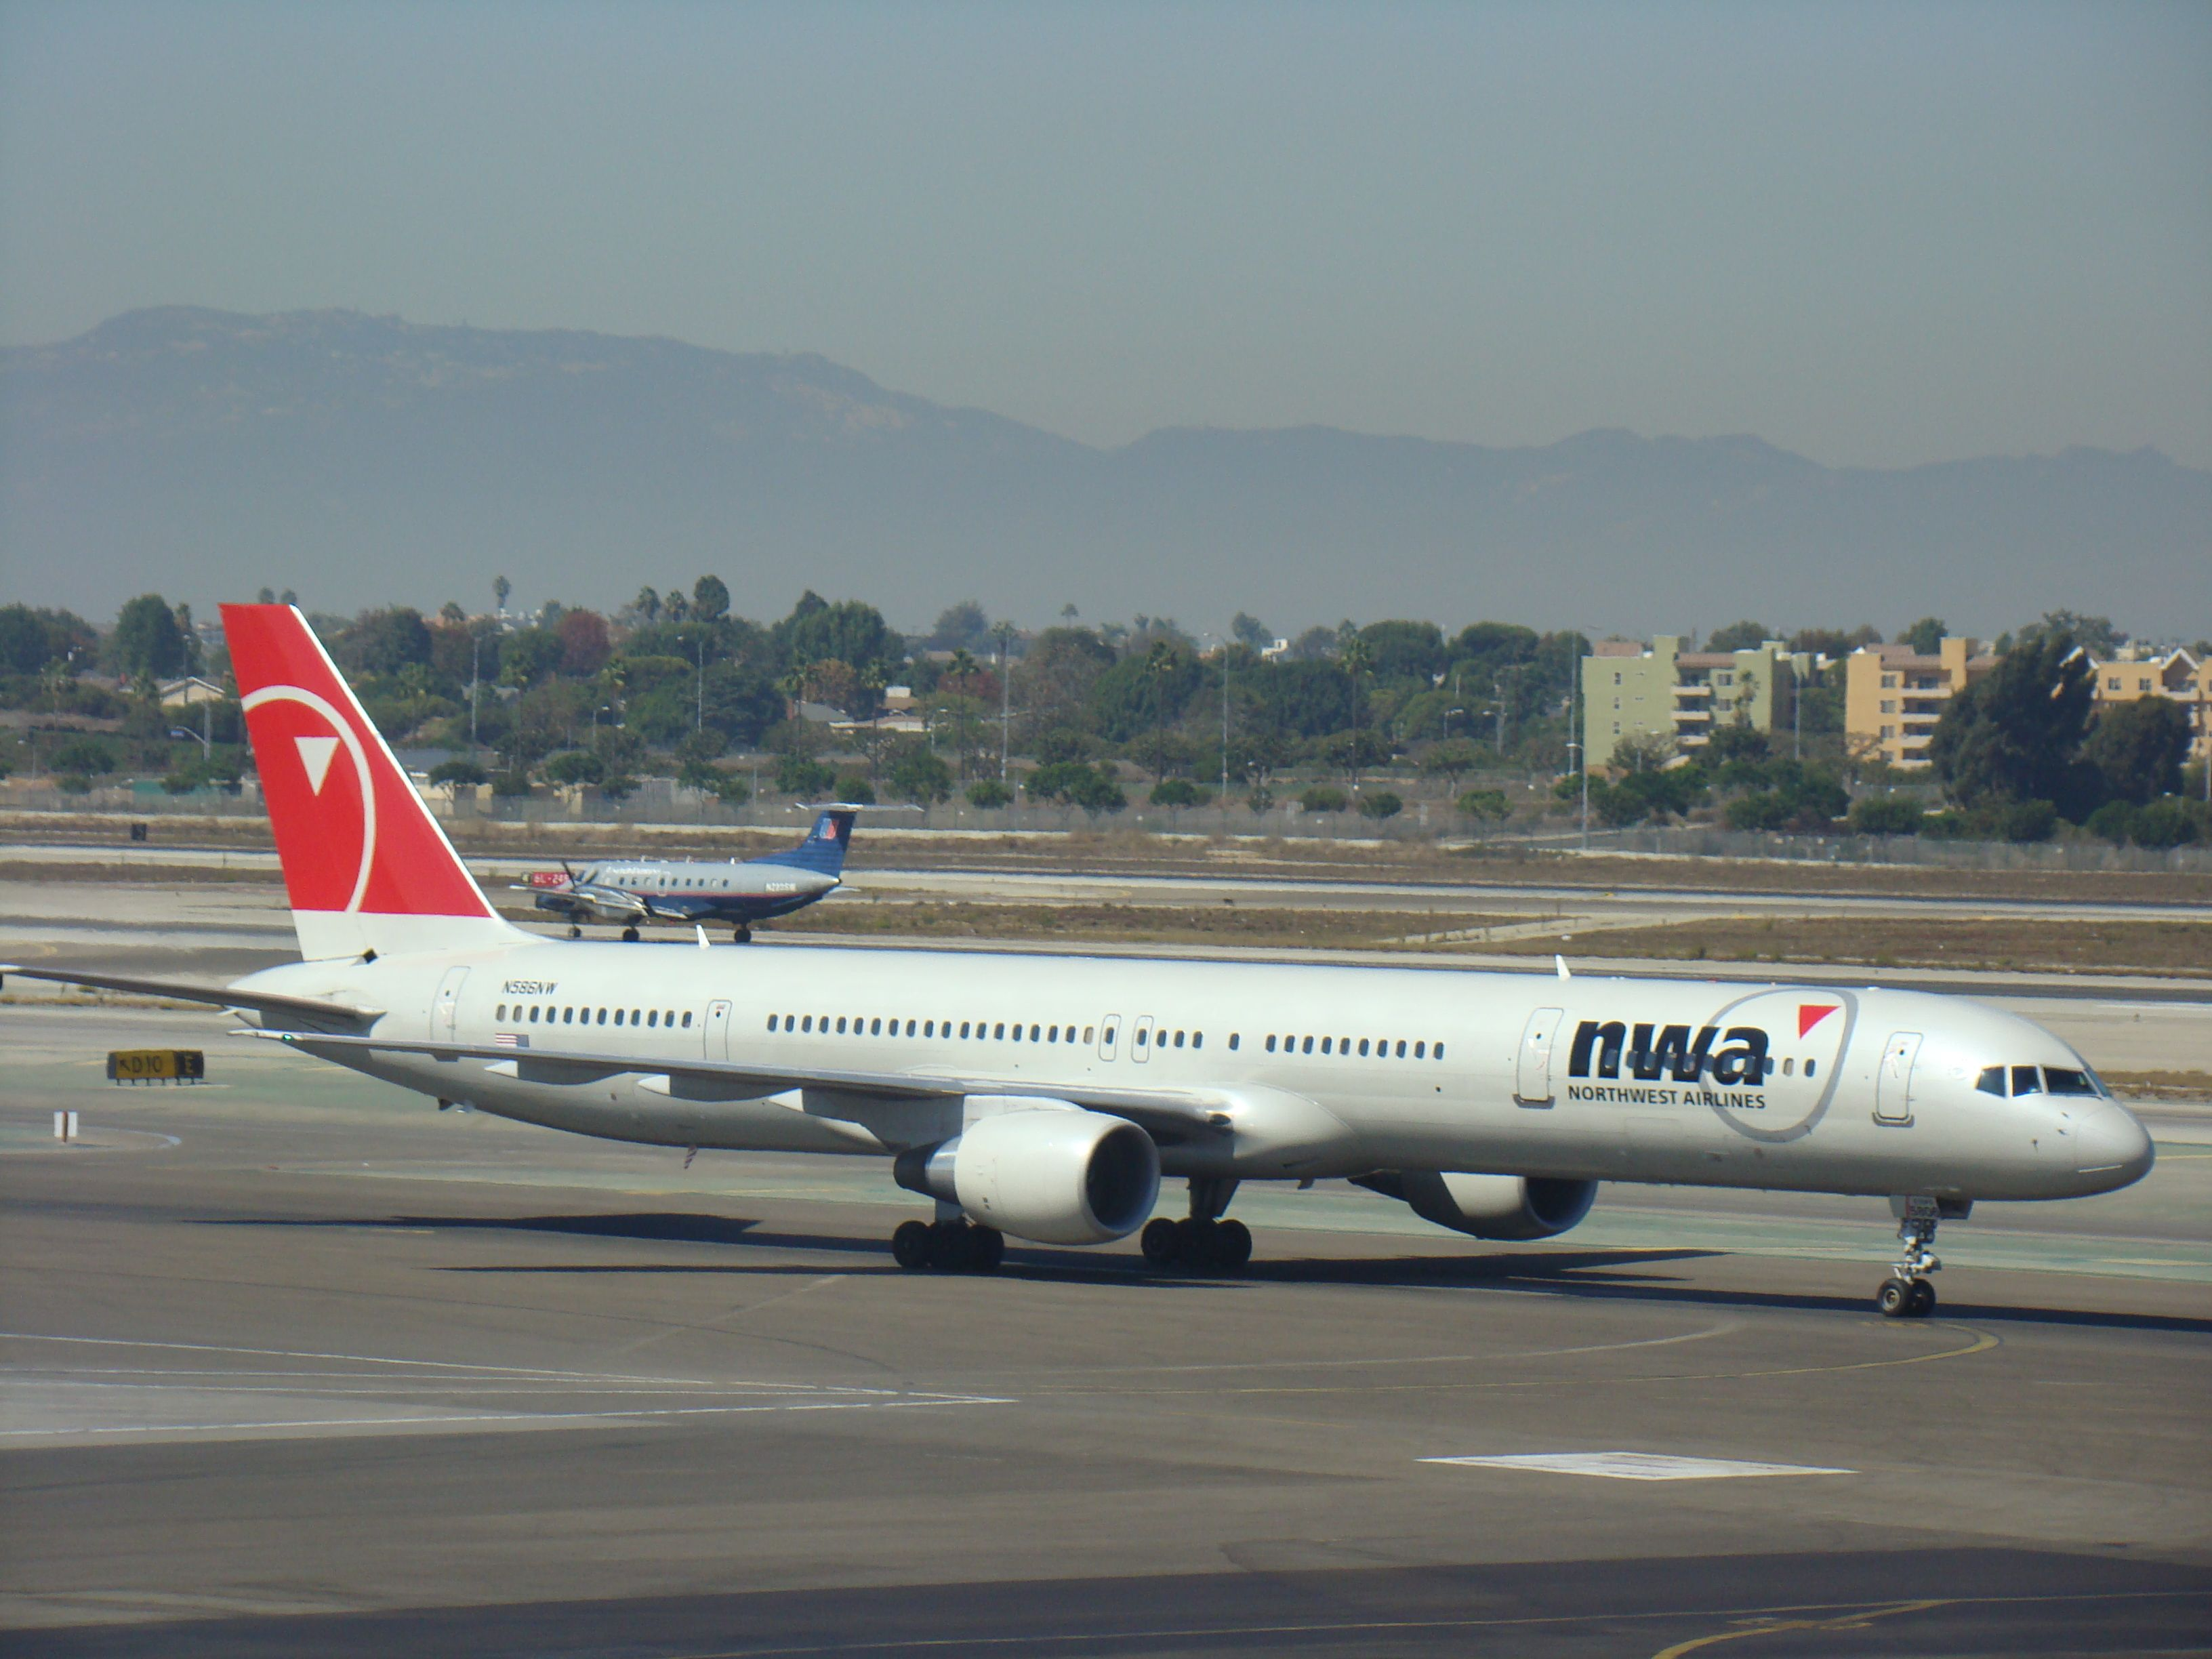 NW 757300 at LAX Northwest airlines, Delta airlines, Boeing